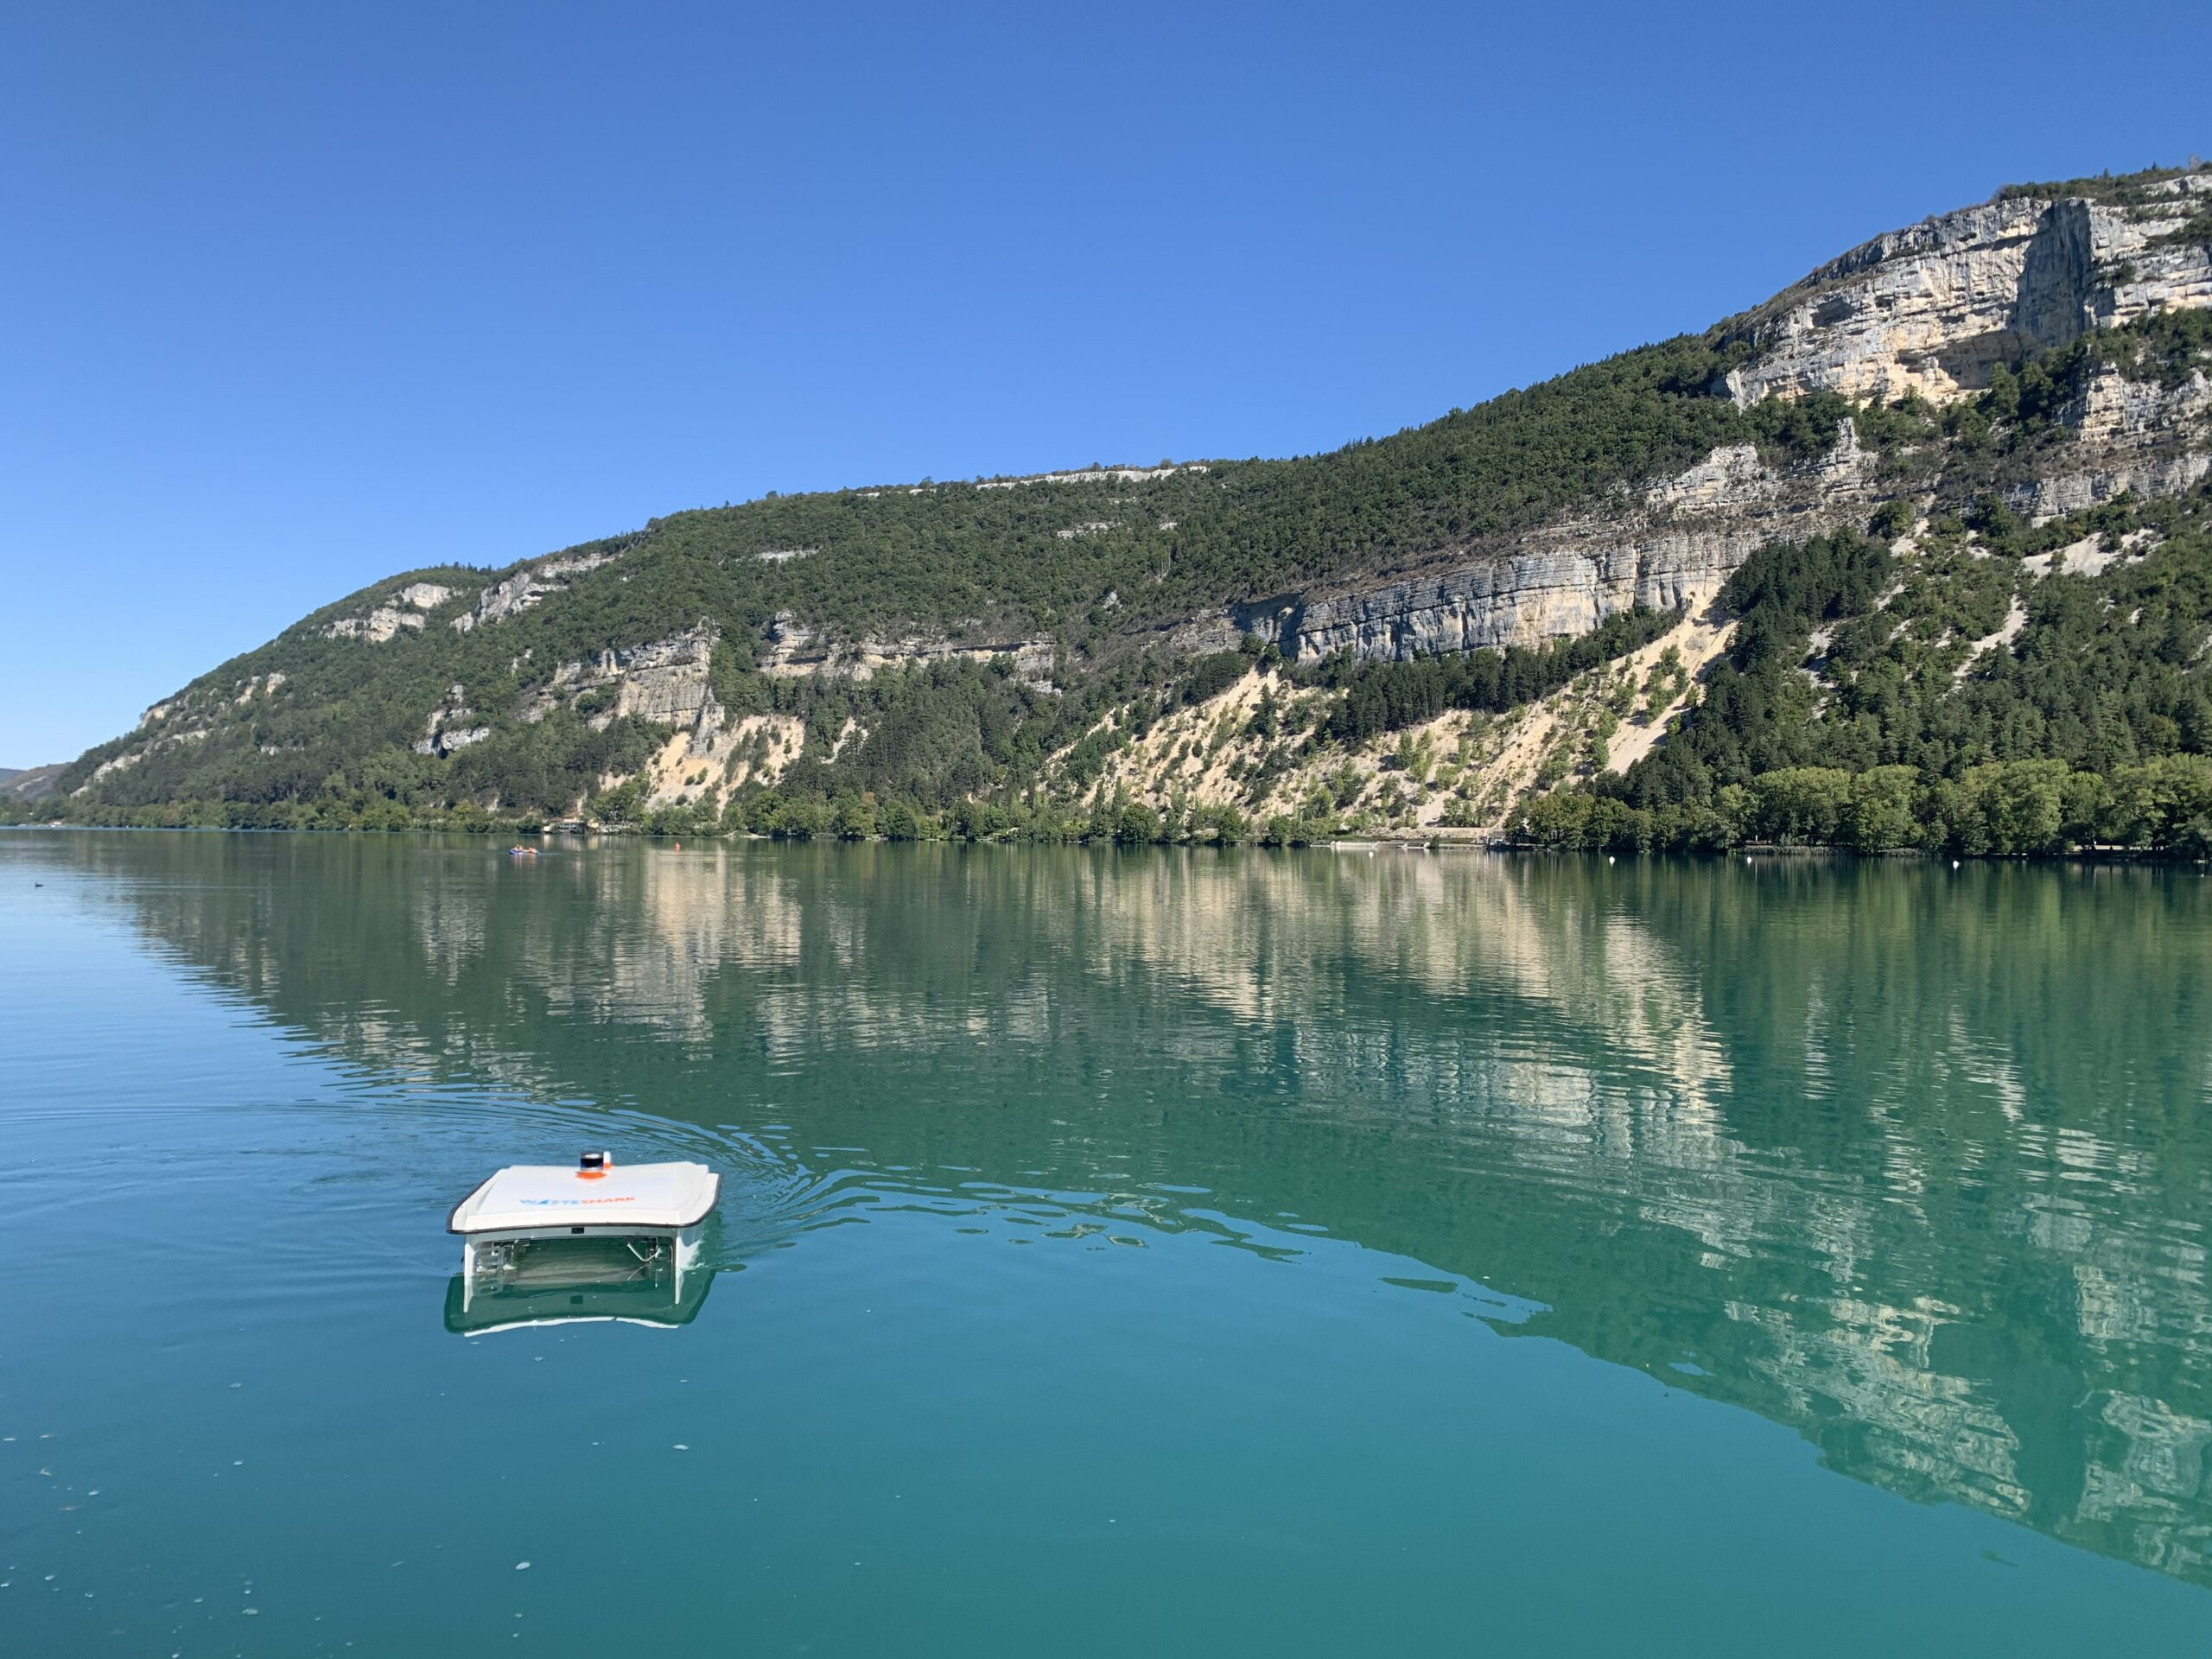 Our WasteShark testing and collecting marine waste in Poralu, France